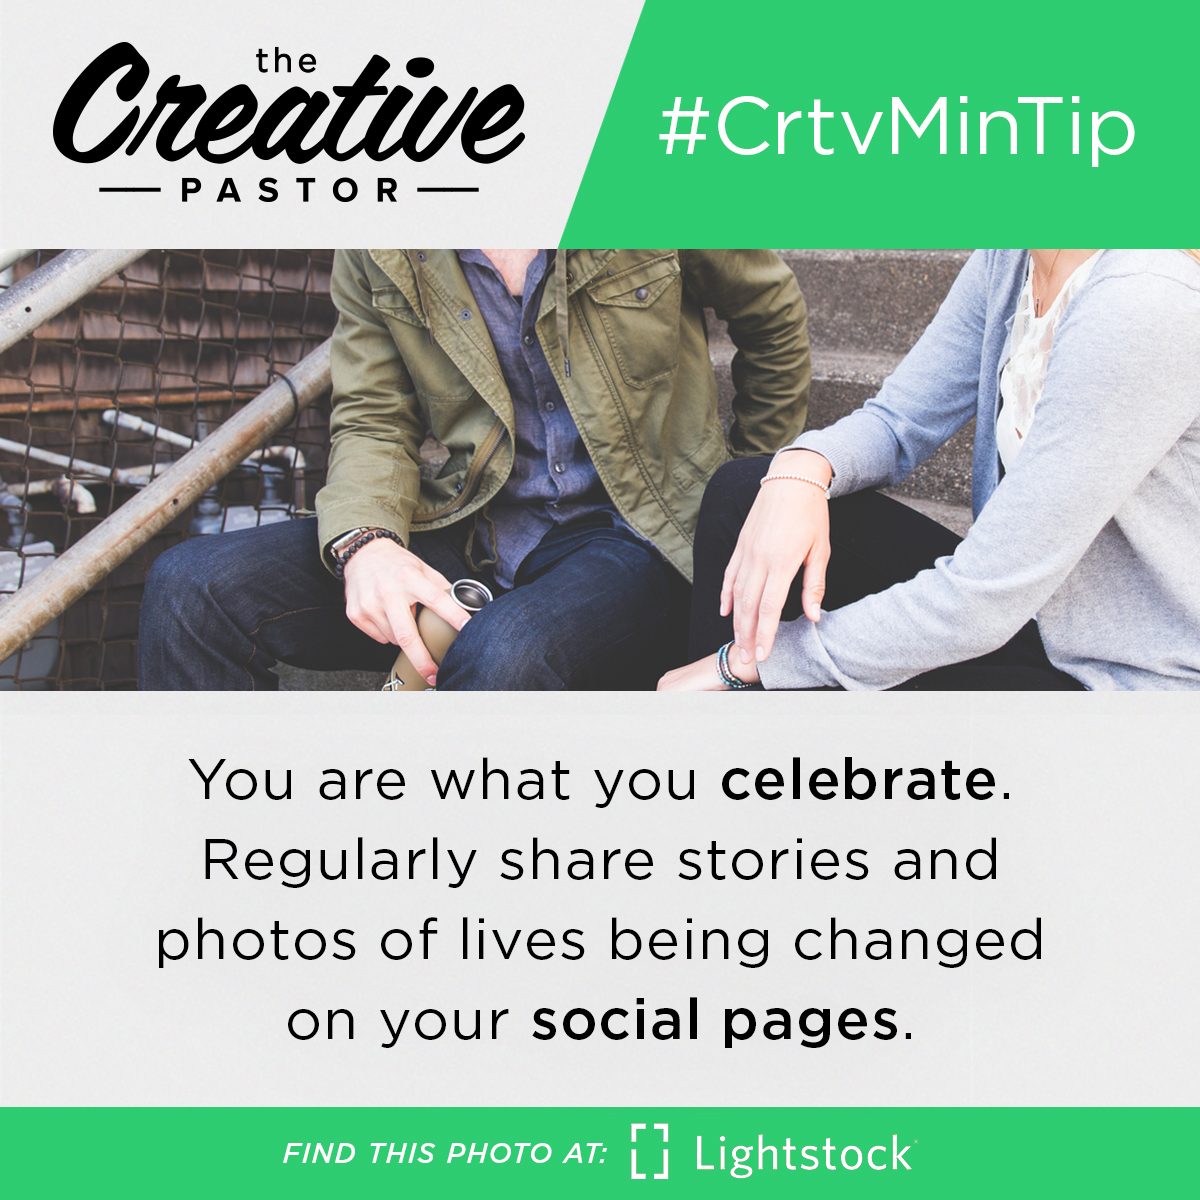 You are what you celebrate. Regularly share stories and photos of lives being changed on your social pages.